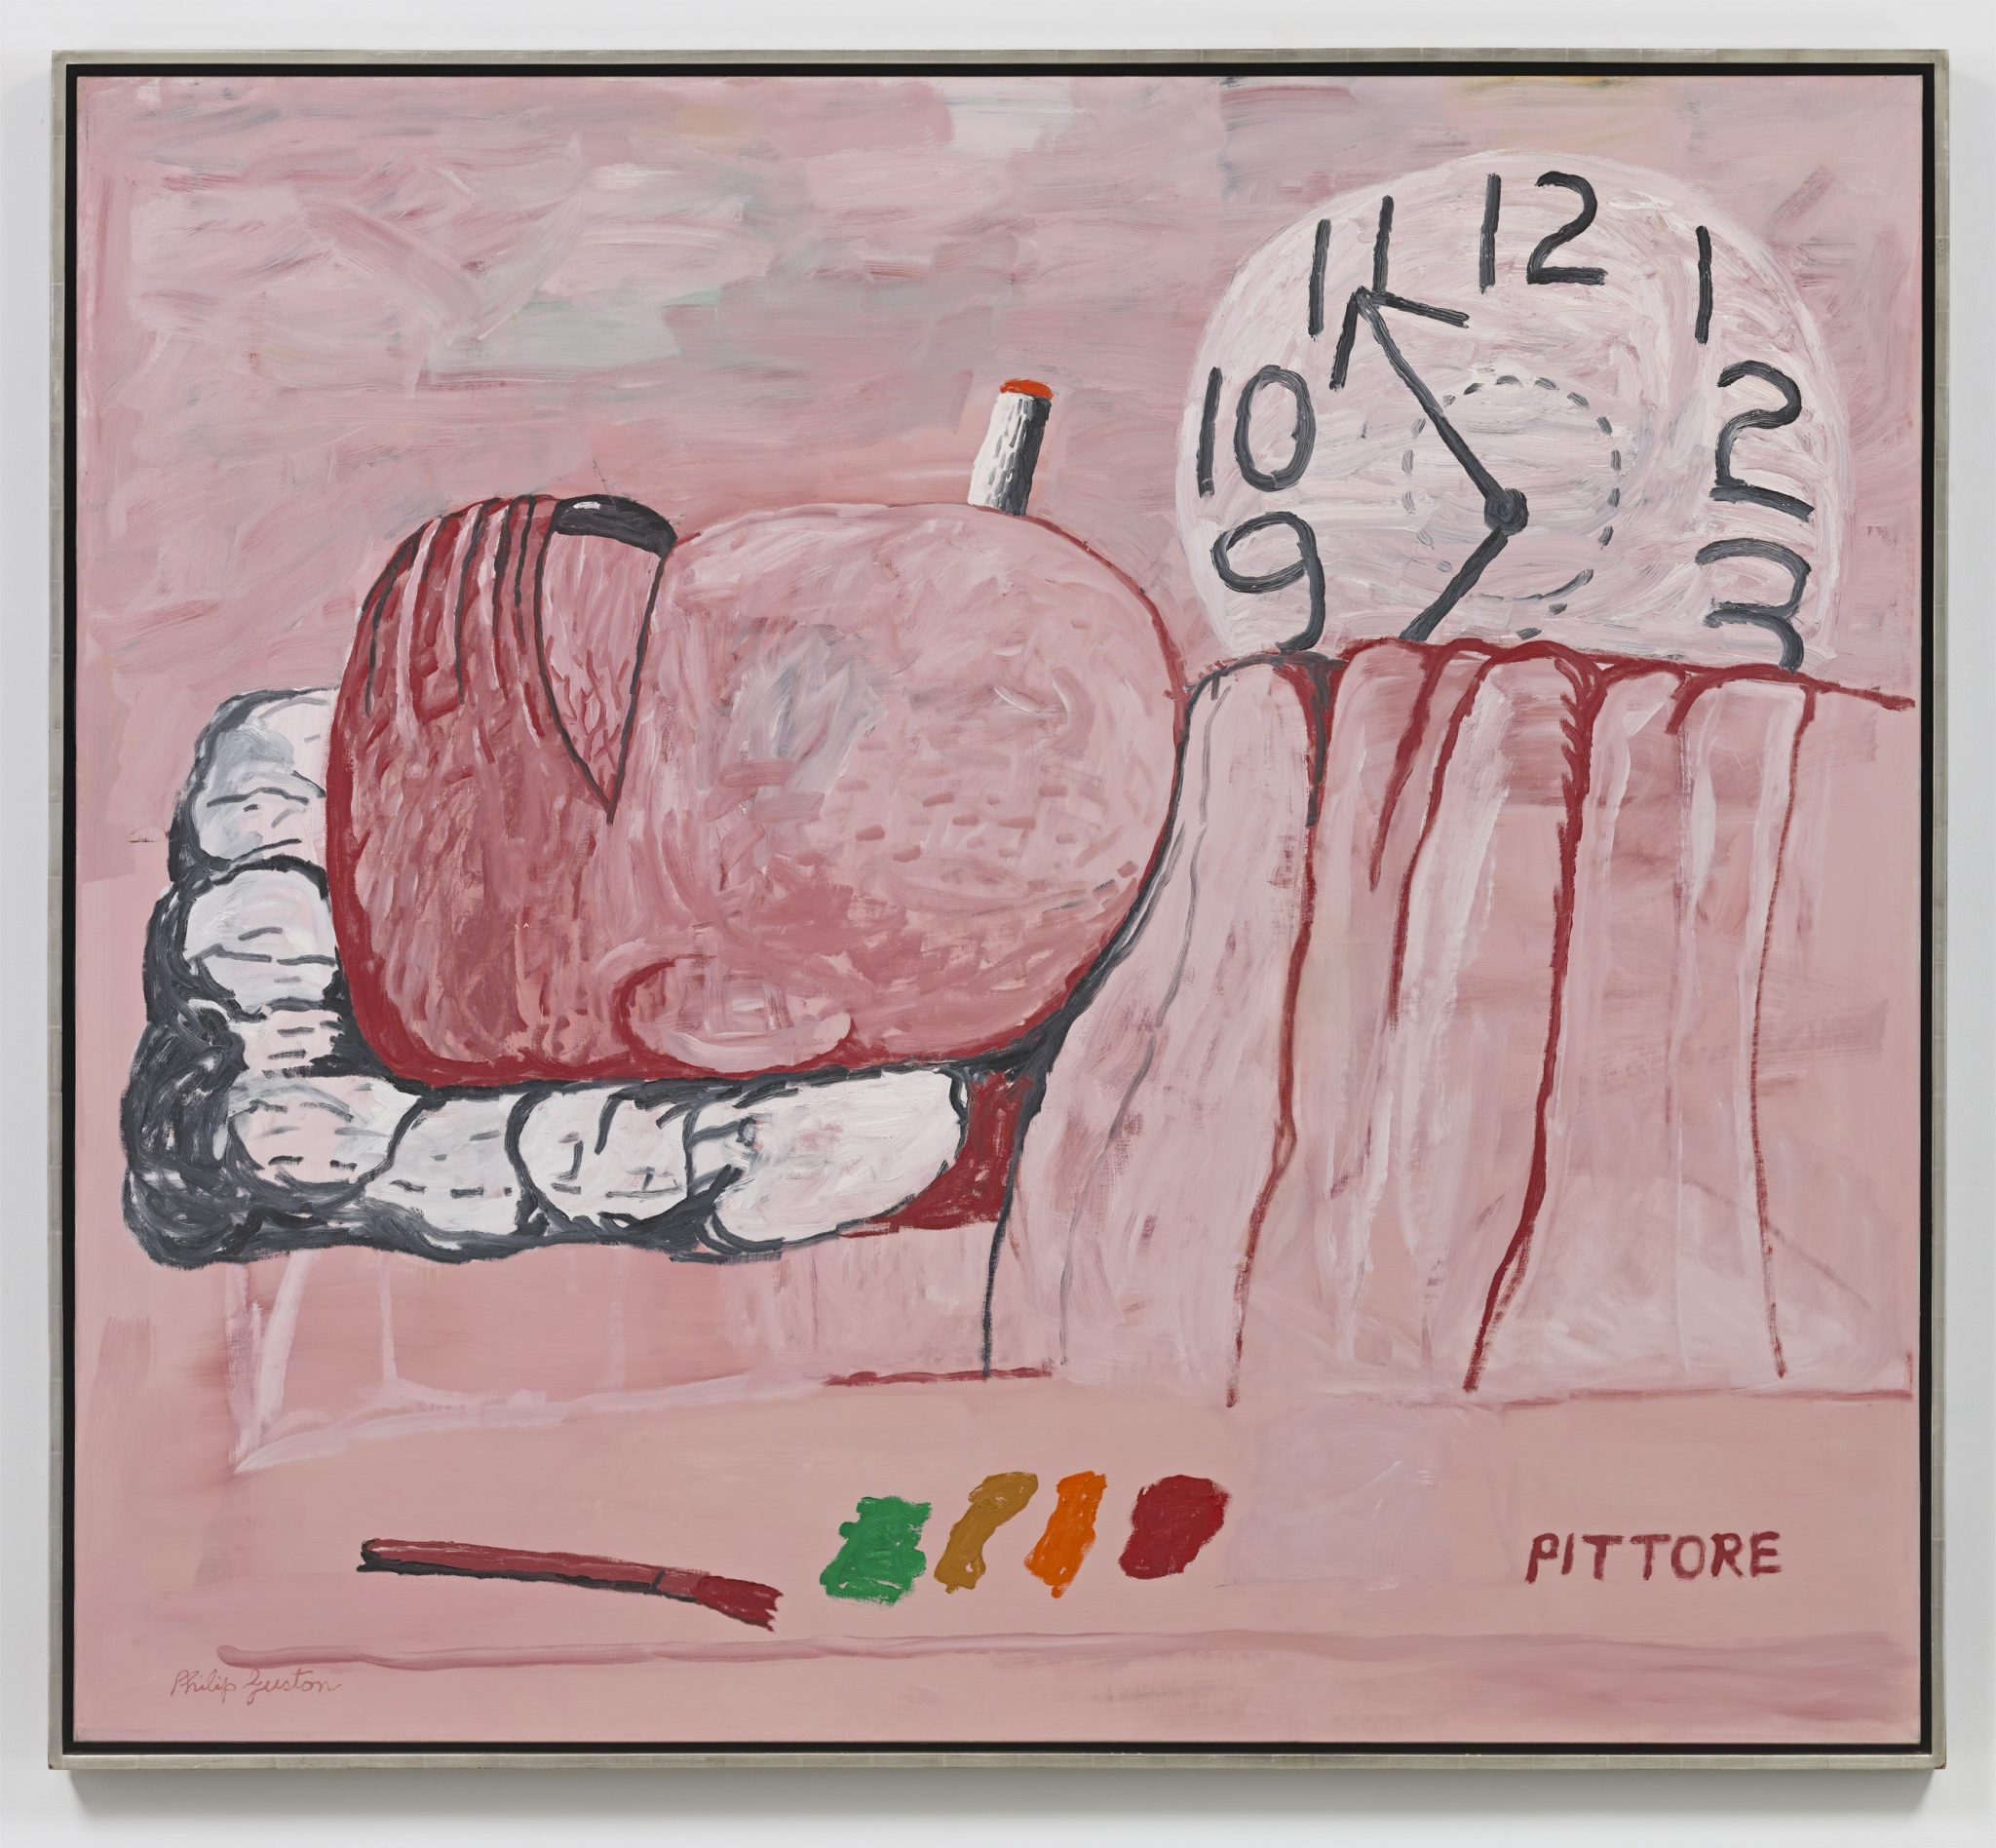 Philip Guston Pittore 1973 © The Estate of Philip Guston Private Collection Photo: Genevieve Hanson